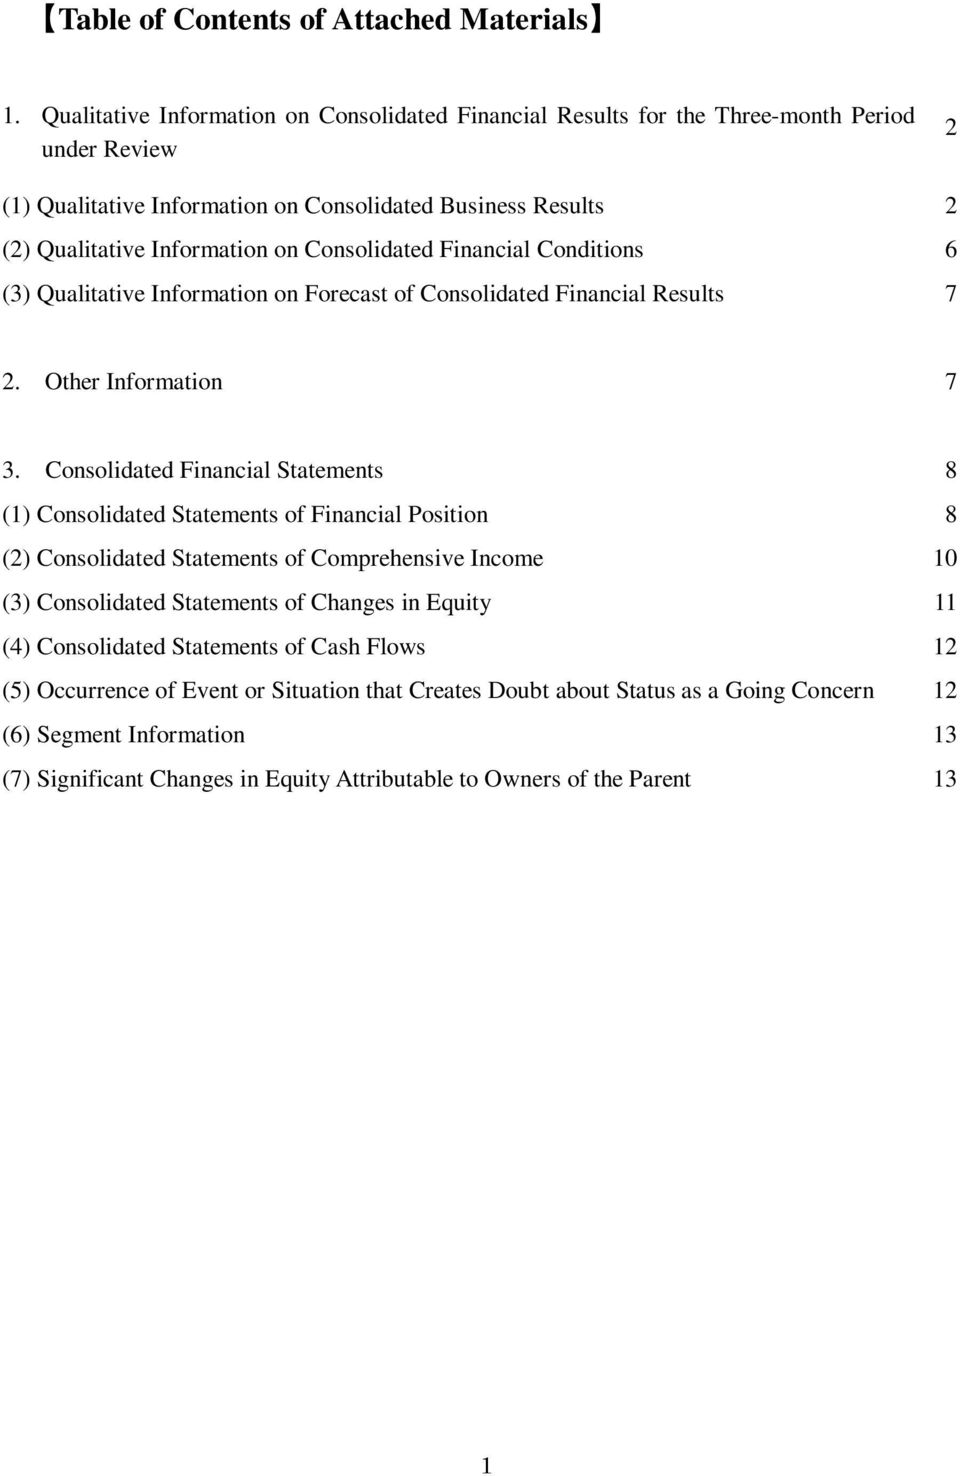 Consolidated Financial Conditions 6 (3) Qualitative Information on Forecast of Consolidated Financial Results 7 2. Other Information 7 3.